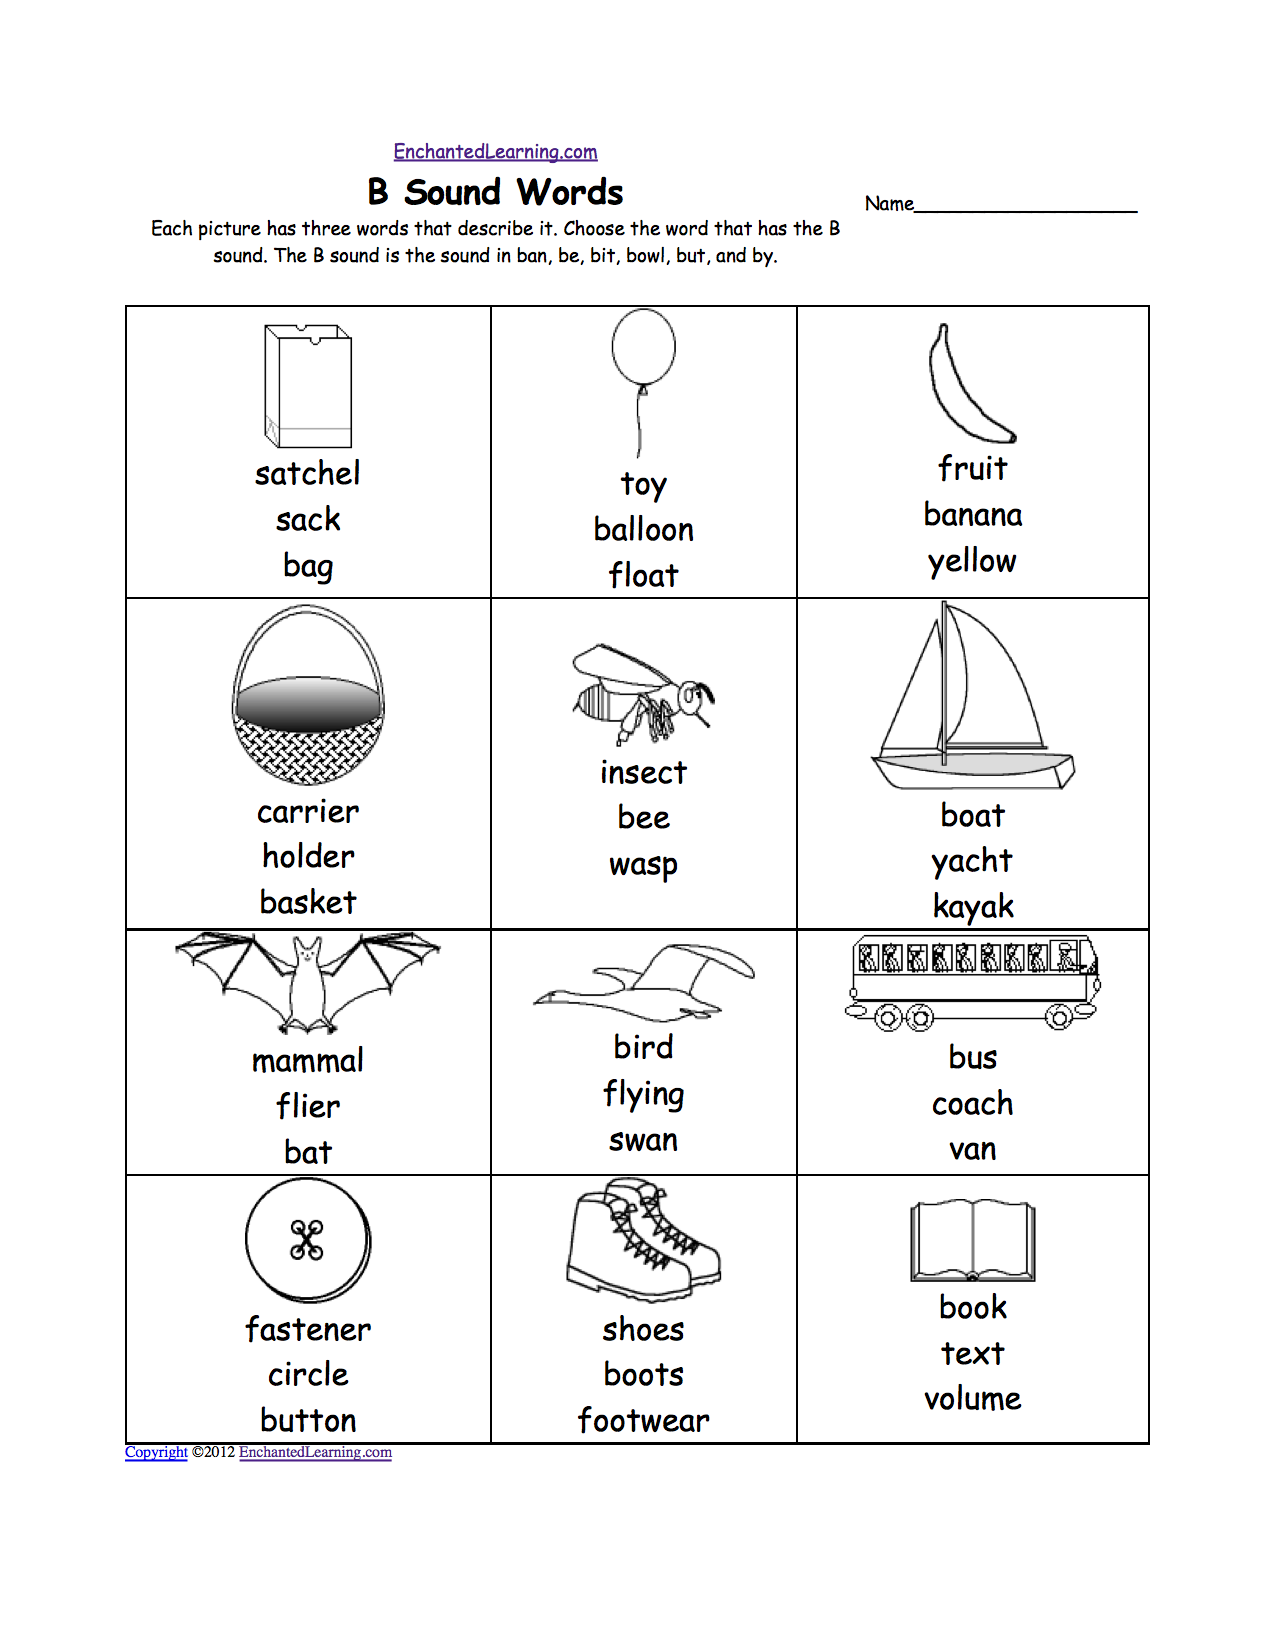 Weirdmailus  Picturesque Phonics Worksheets Multiple Choice Worksheets To Print  With Likable Quotbquot Sound Phonics Worksheet Multiple Choice Each Picture Has Three Words That Describe It Choose The Word That Has A Quotbquot Sound The Quotbquot Sound Is The Sound  With Amazing Timetable Printable Worksheets Also Comparative And Superlative Adjectives Worksheet Pdf In Addition Stone Fox Worksheets And Simplifying Radicals Worksheets As Well As Rational Equations And Inequalities Worksheet Additionally Coins Worksheet From Enchantedlearningcom With Weirdmailus  Likable Phonics Worksheets Multiple Choice Worksheets To Print  With Amazing Quotbquot Sound Phonics Worksheet Multiple Choice Each Picture Has Three Words That Describe It Choose The Word That Has A Quotbquot Sound The Quotbquot Sound Is The Sound  And Picturesque Timetable Printable Worksheets Also Comparative And Superlative Adjectives Worksheet Pdf In Addition Stone Fox Worksheets From Enchantedlearningcom